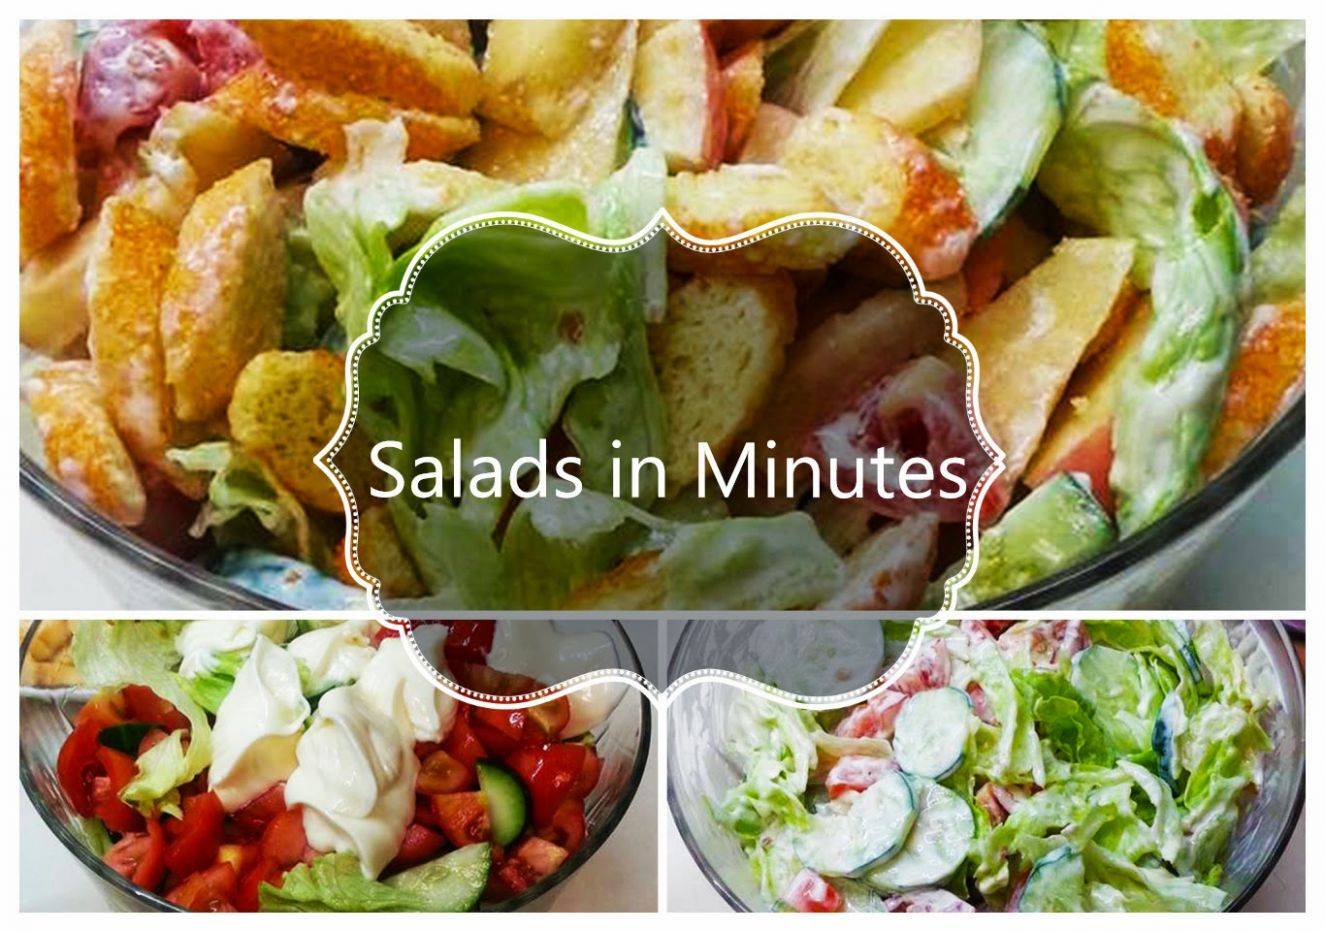 Quick & Easy Vegetable Salads in Minutes! | Geeky Pinas - Salad Recipes Easy Philippines